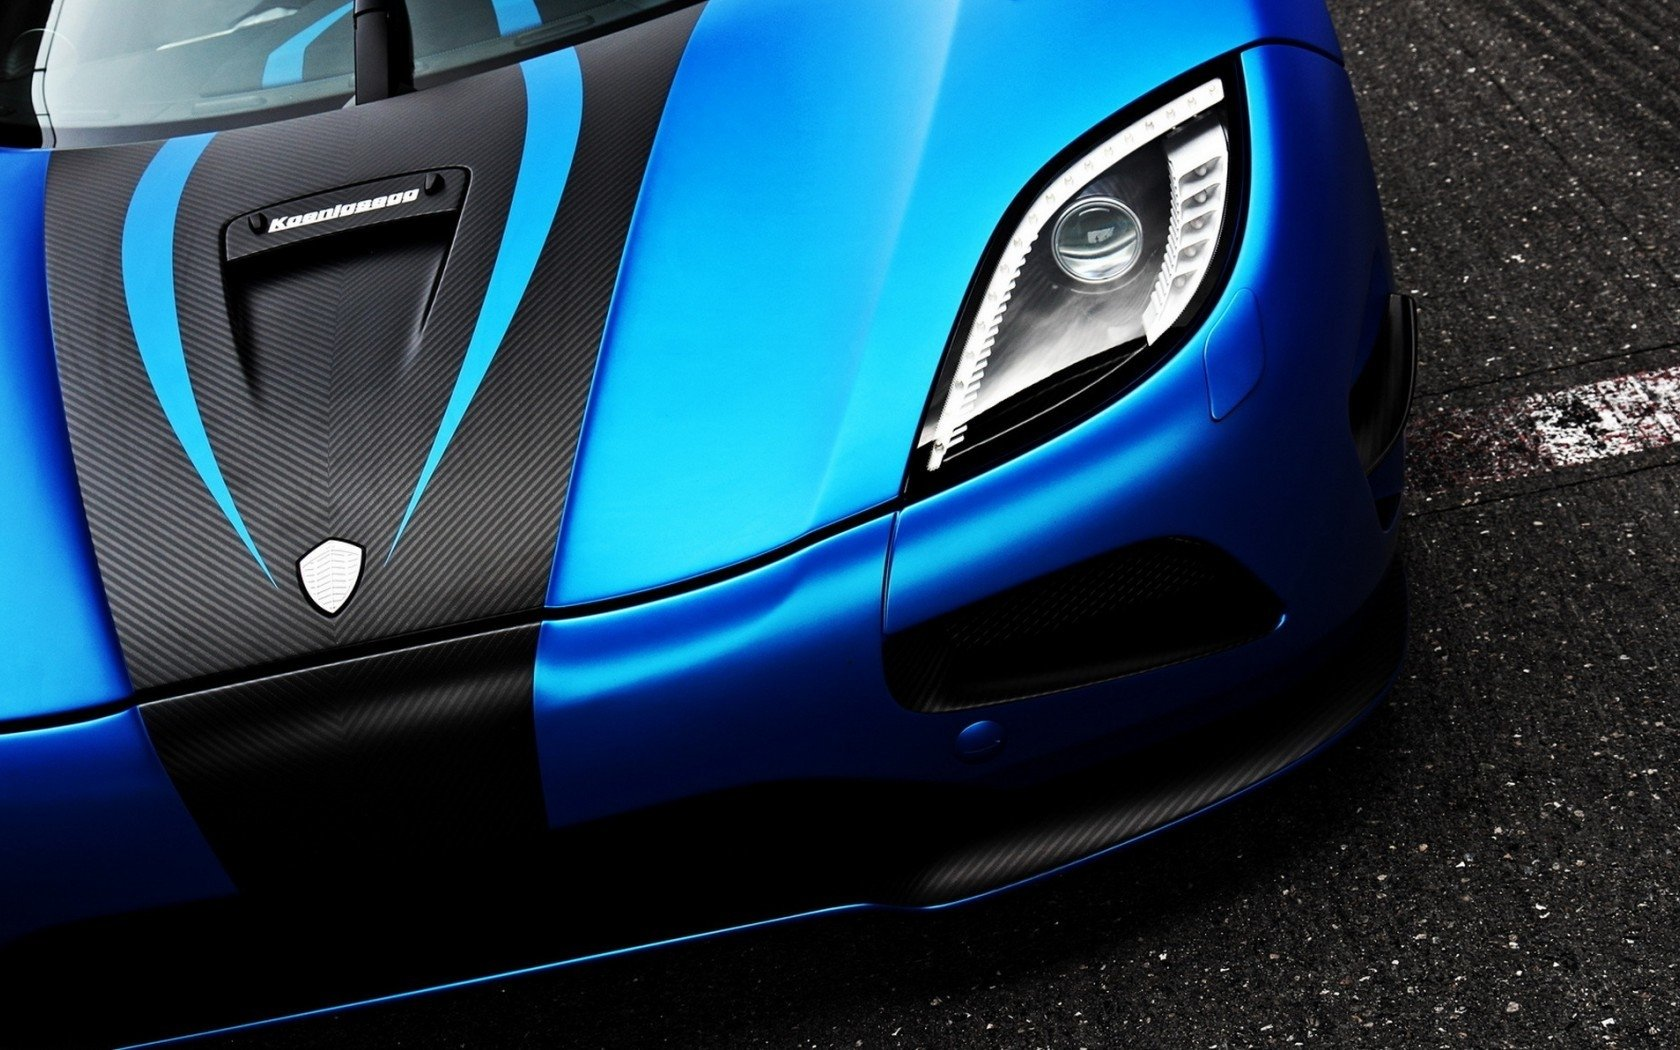 Vehicles - Koenigsegg Agera  Koenigsegg Agera R Sport Car Koenigsegg Vehicle Car Blue Car Wallpaper